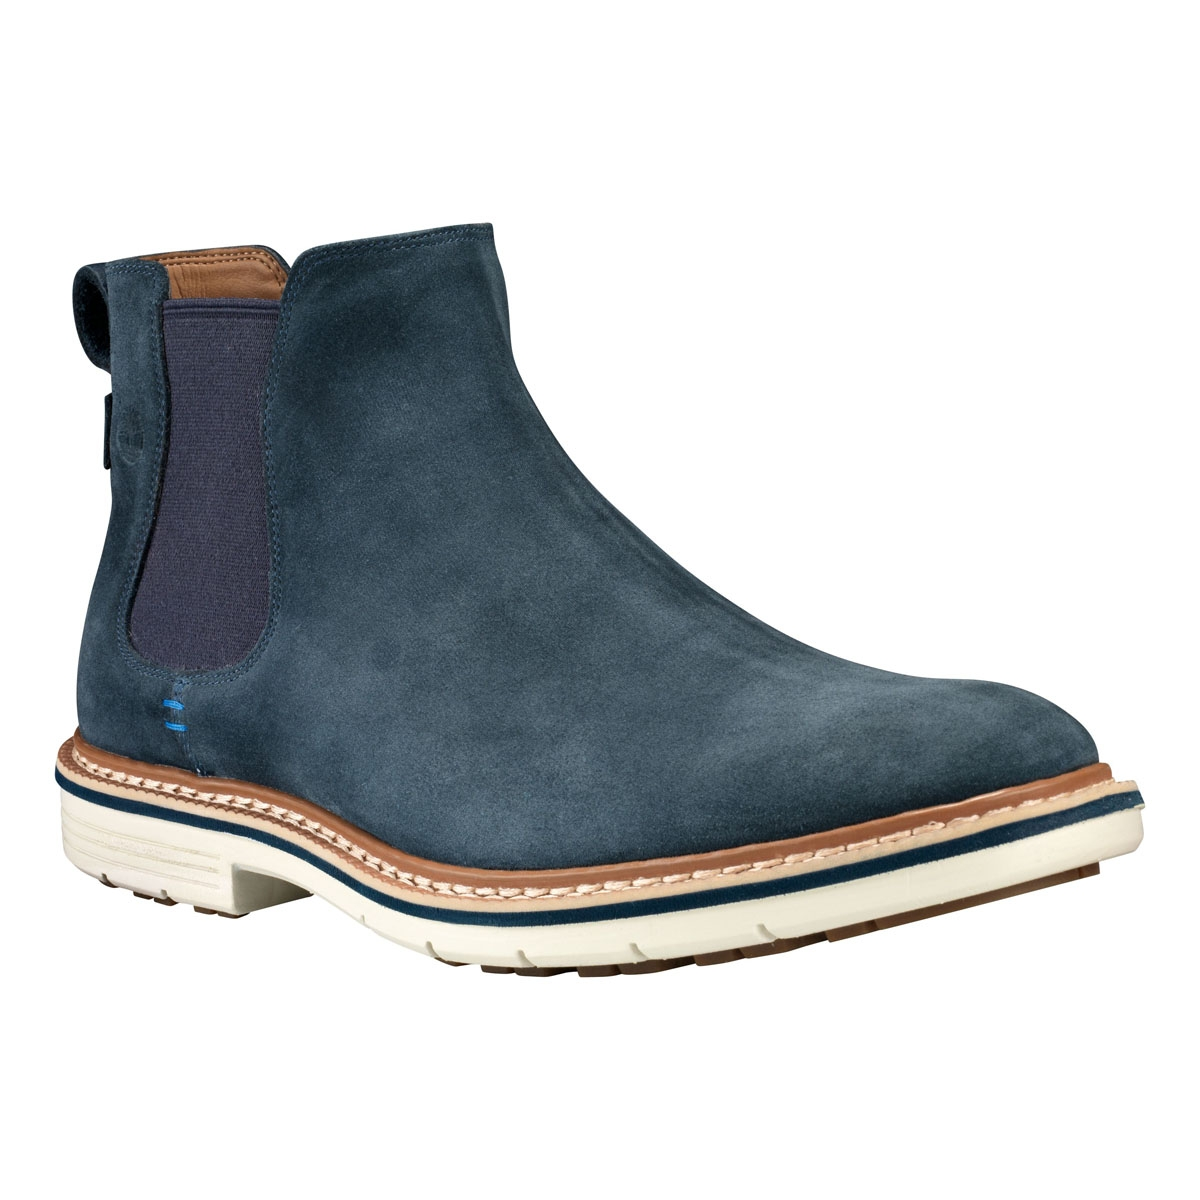 Timberland Naples Trail Chelsea Boots